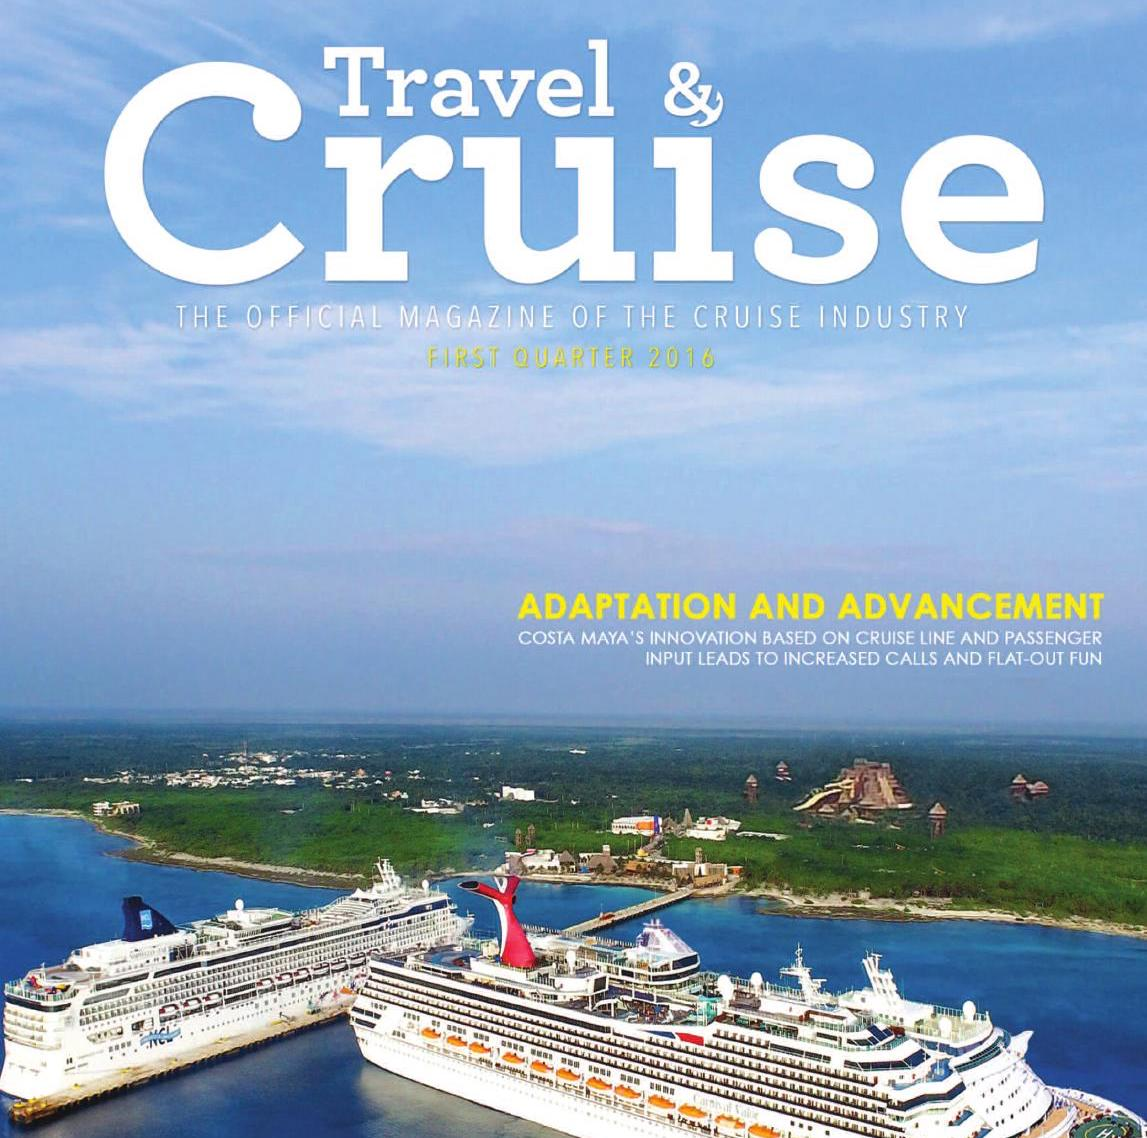 Independent Publishing Company Cruise & Travel Magazine, a Doral Chamber of Commerce member.